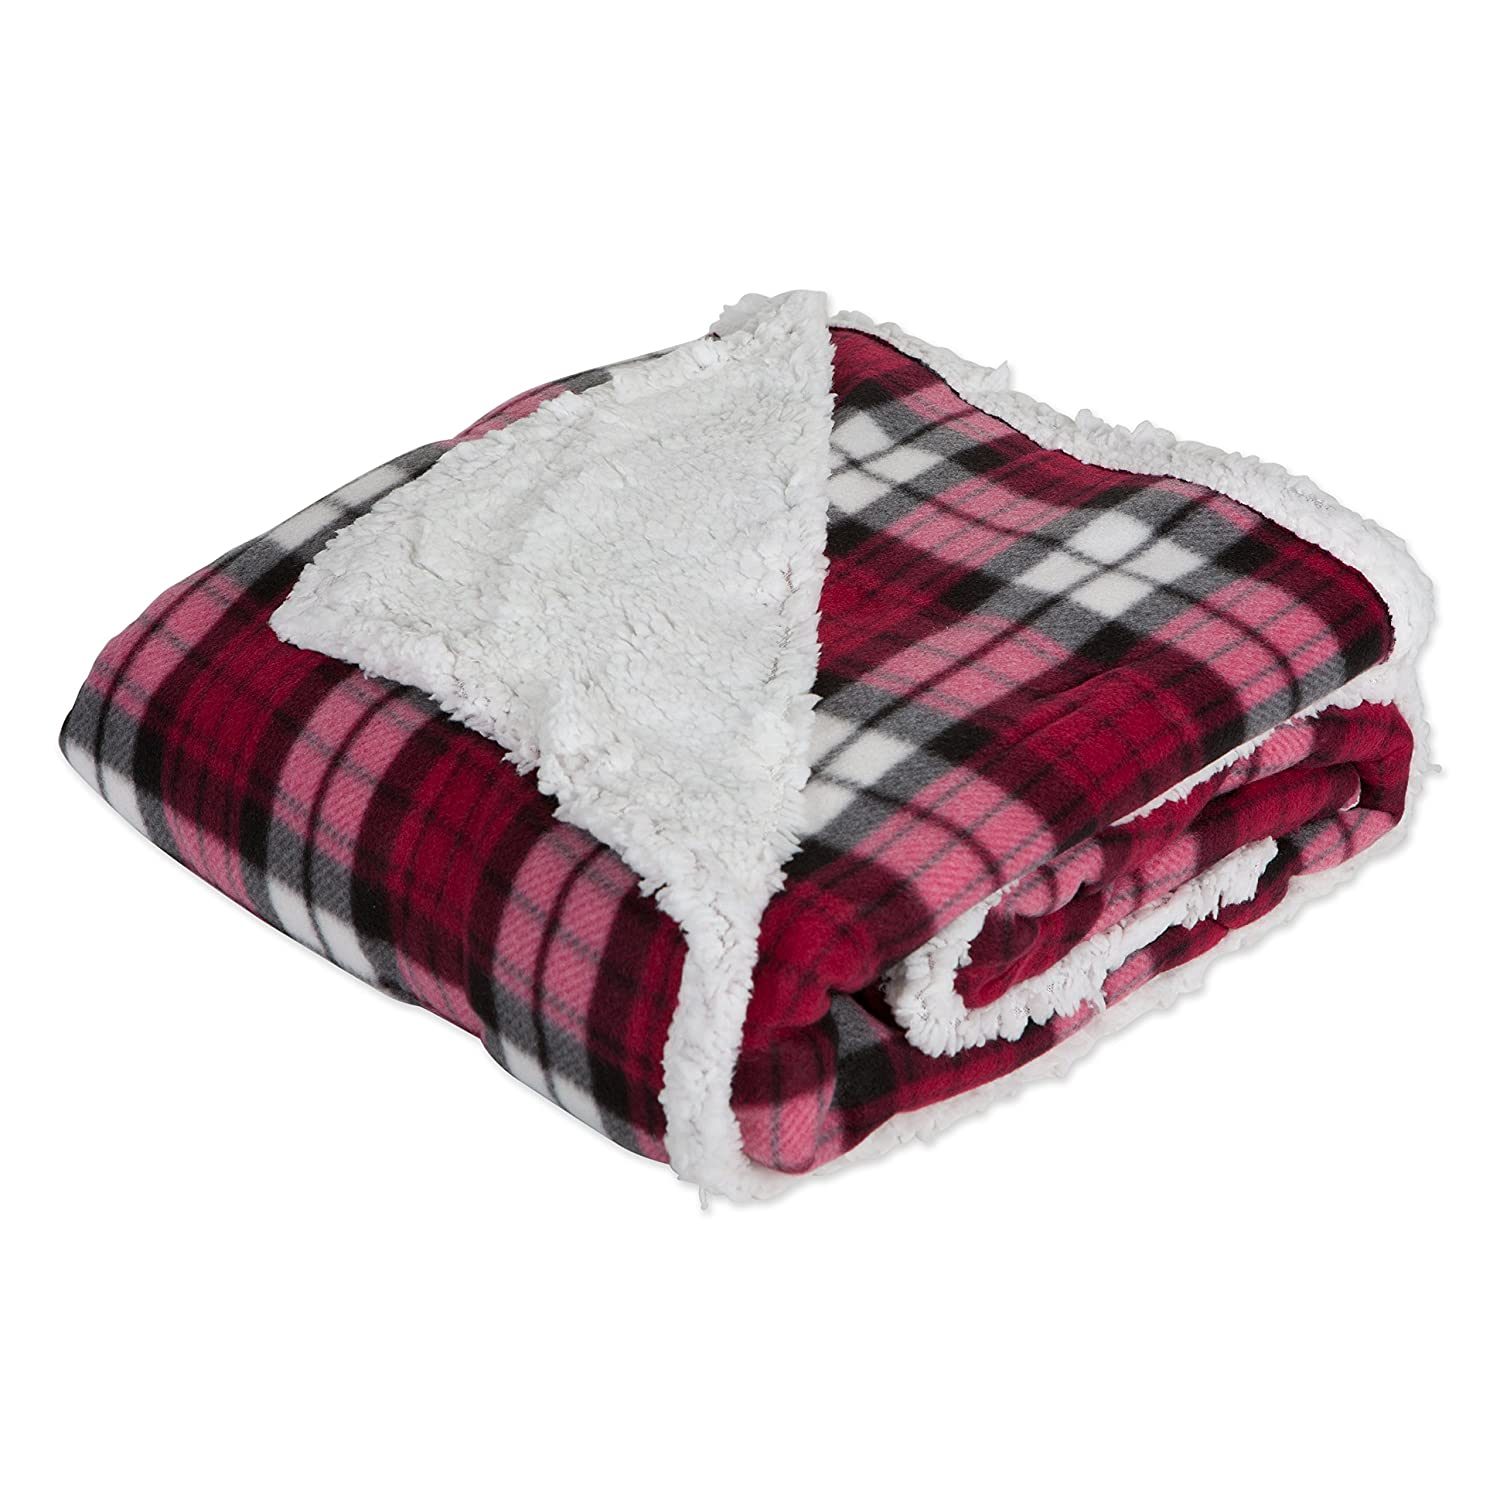 J&M Home Fashions Plaid Fleece Plush Throw Blanket, 50